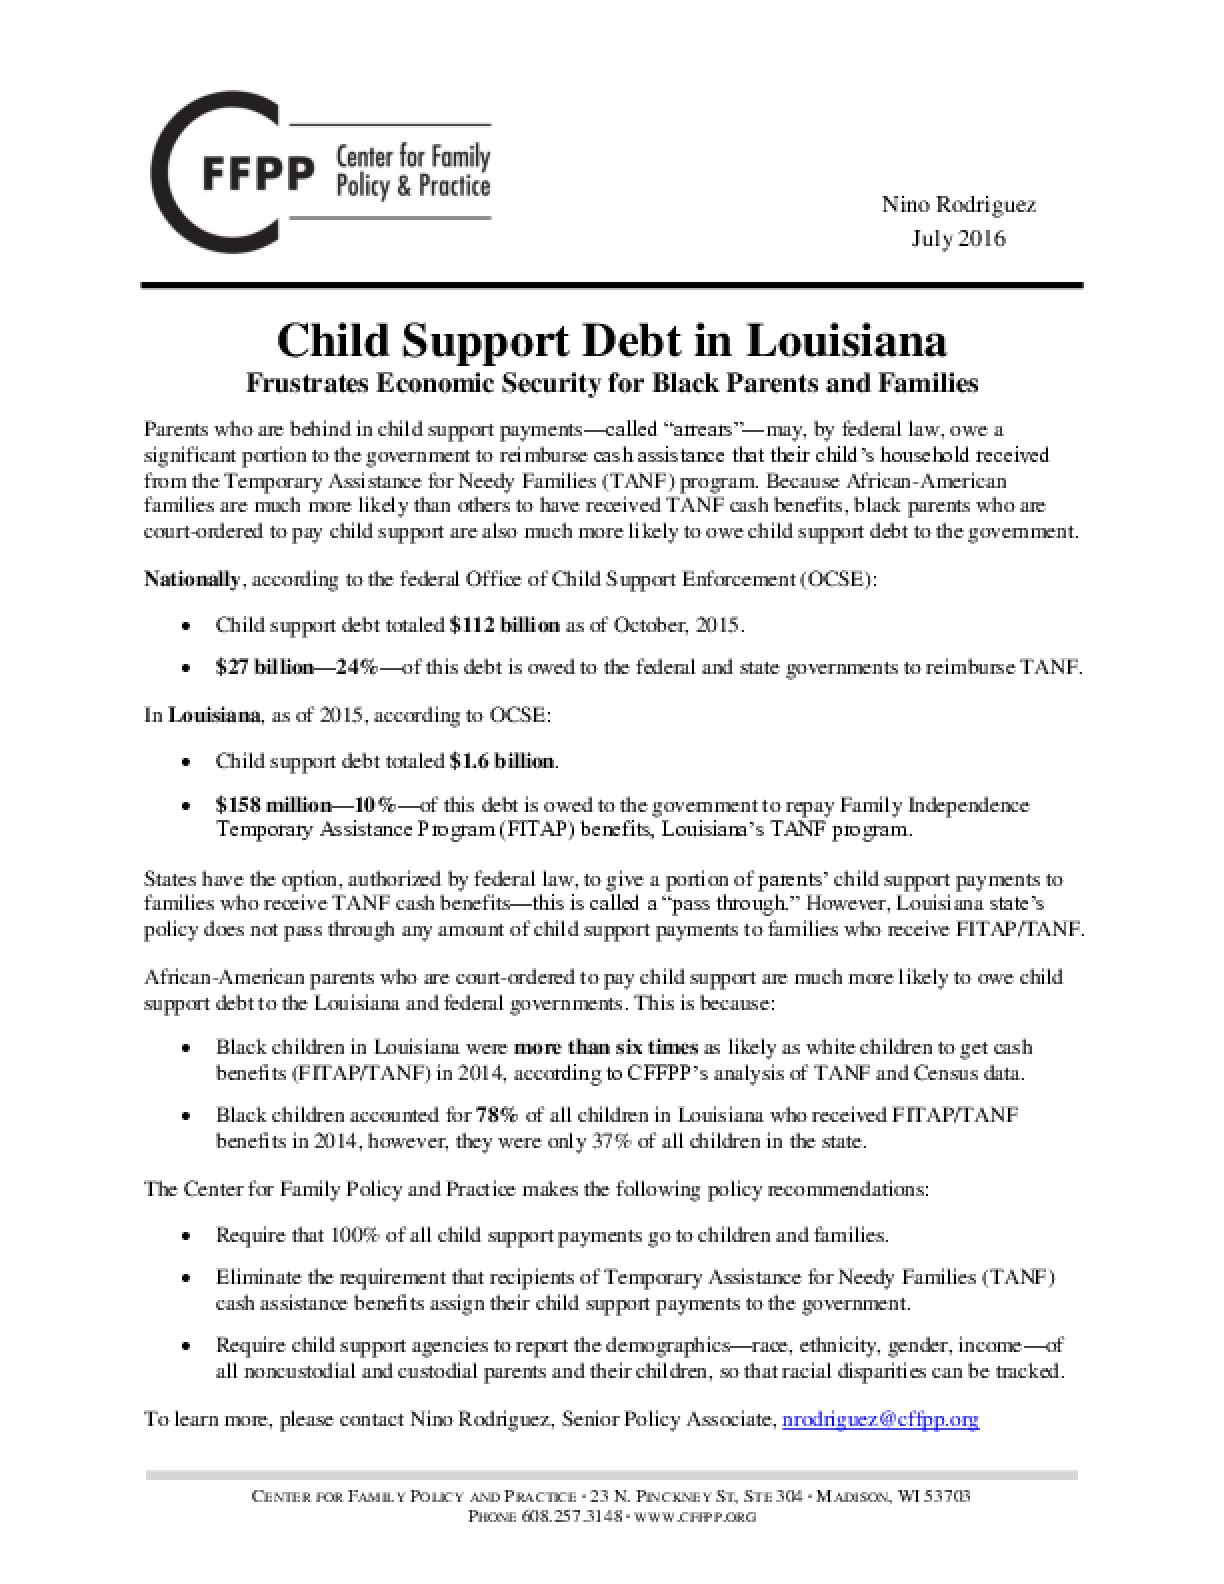 Child Support Debt in Louisiana Frustrates Economic Stability for Black Parents and Families